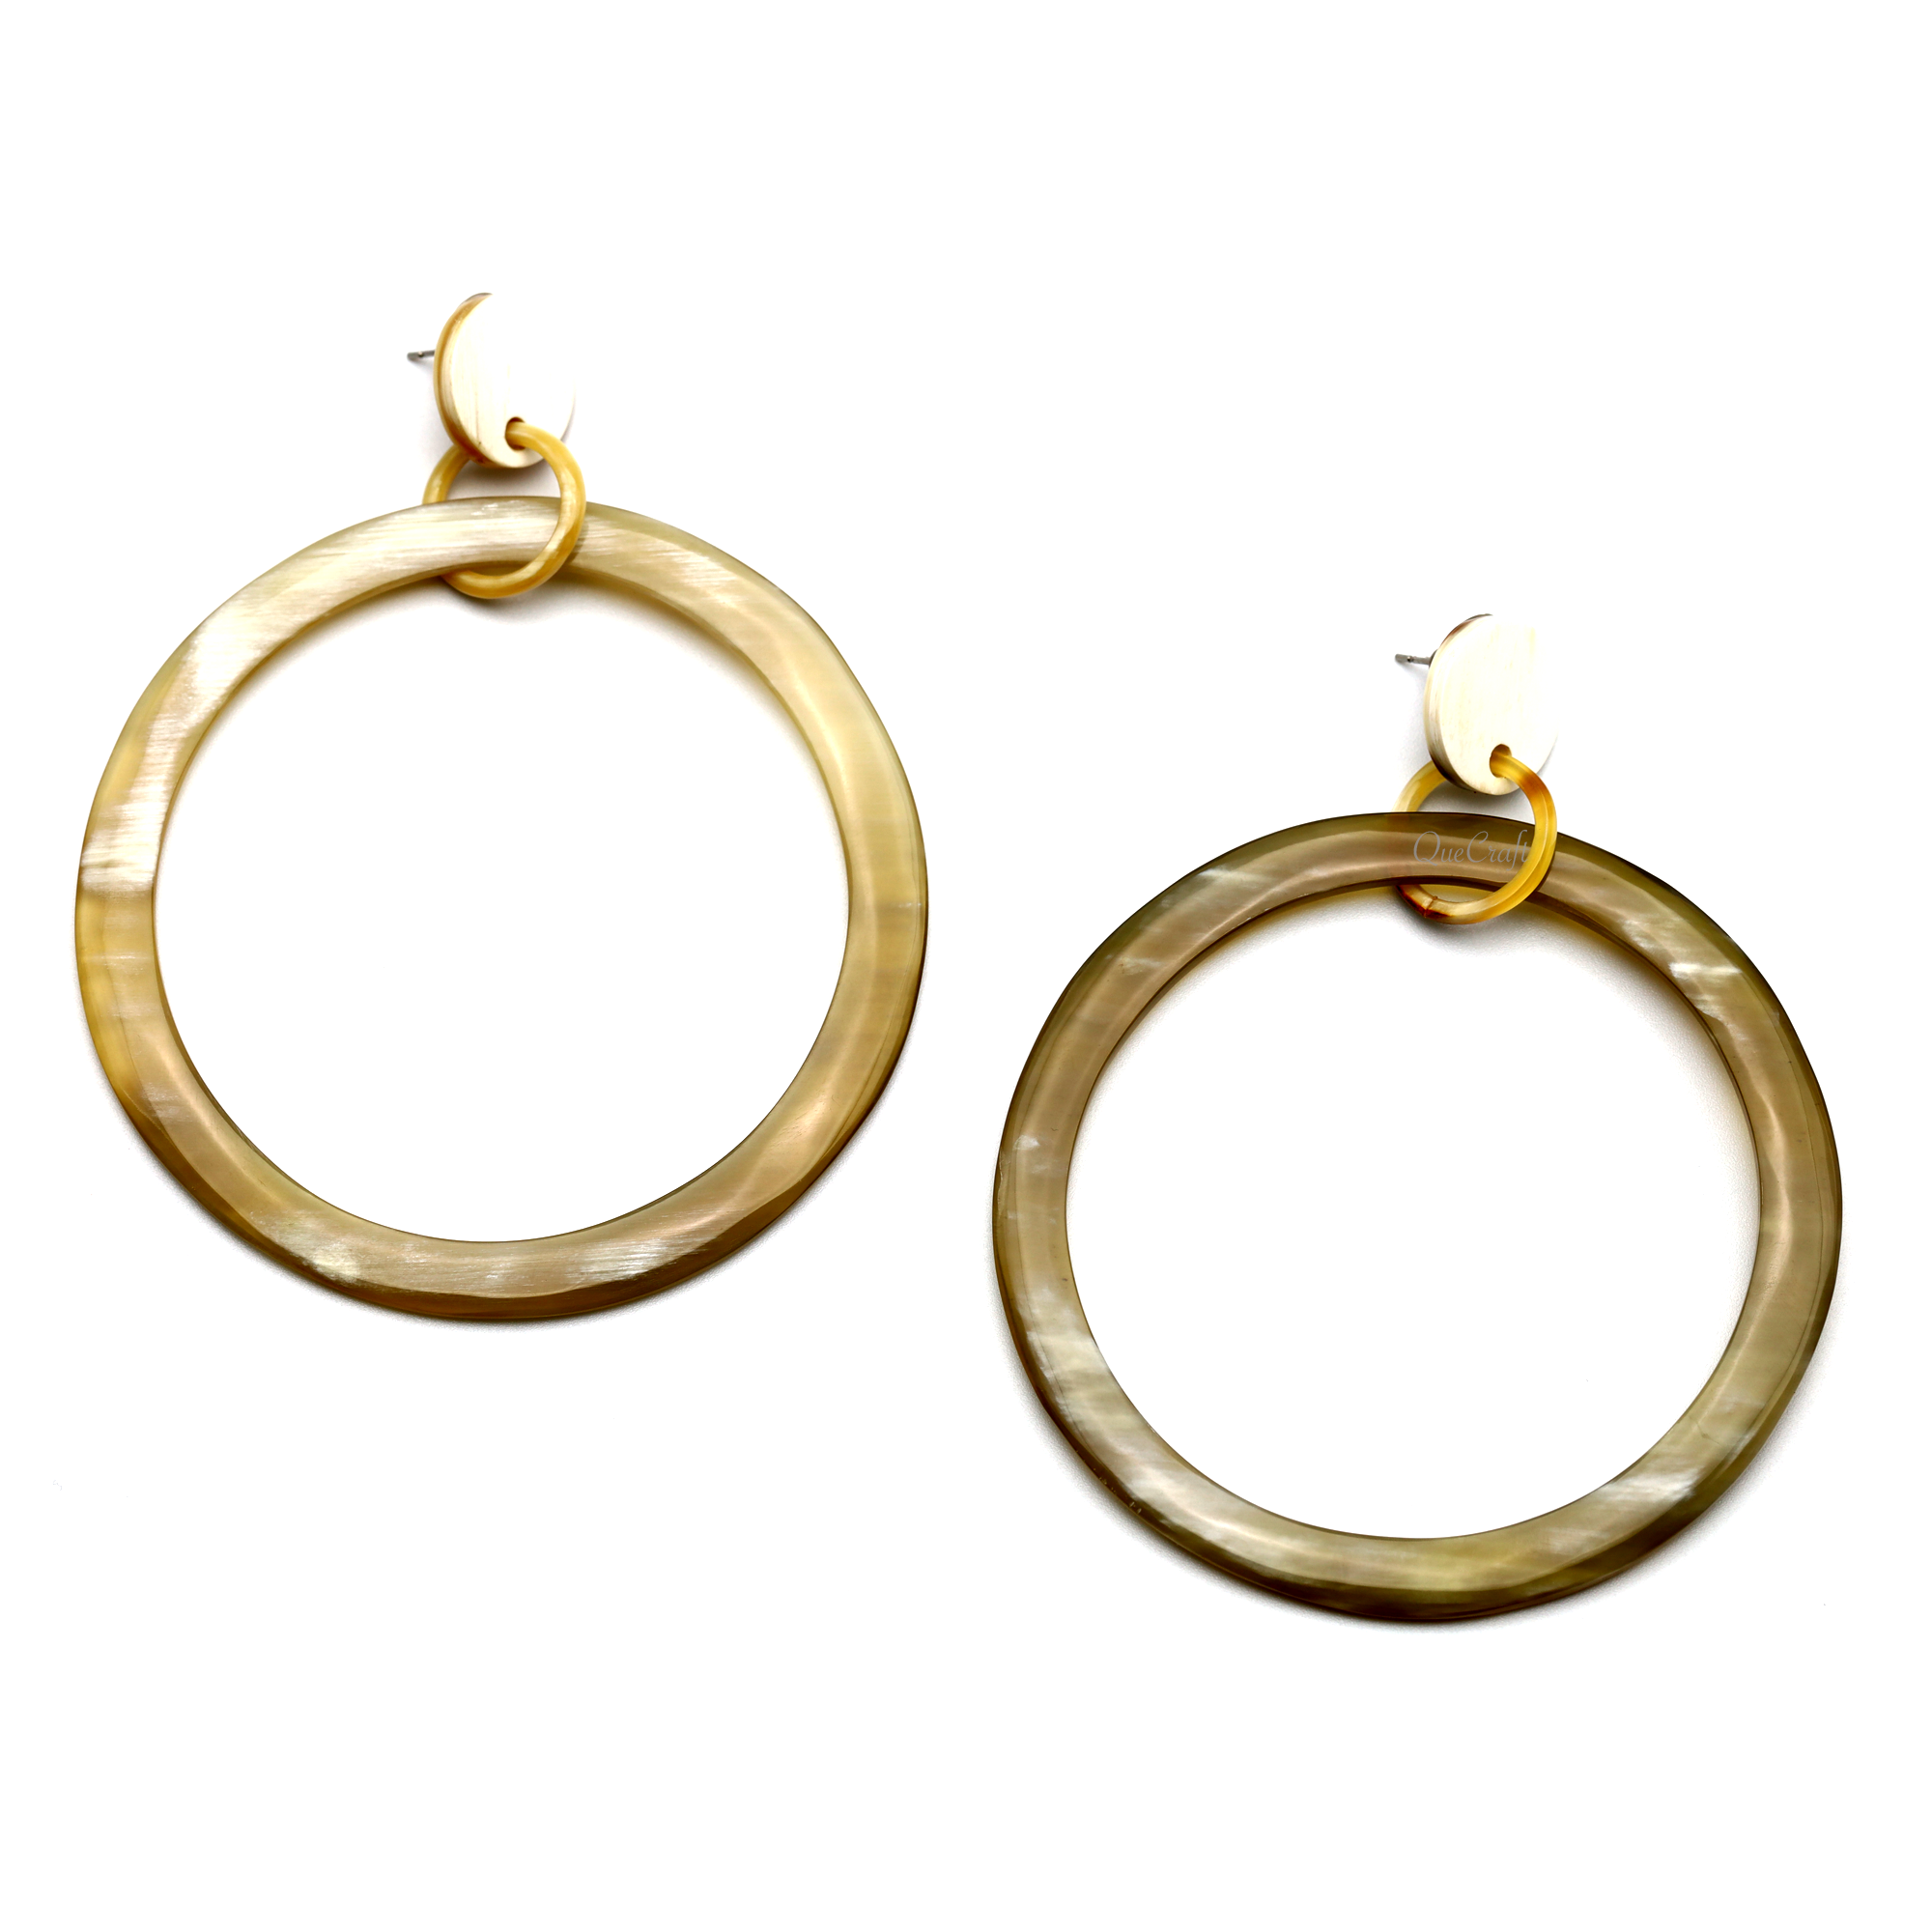 Horn Earrings #13505